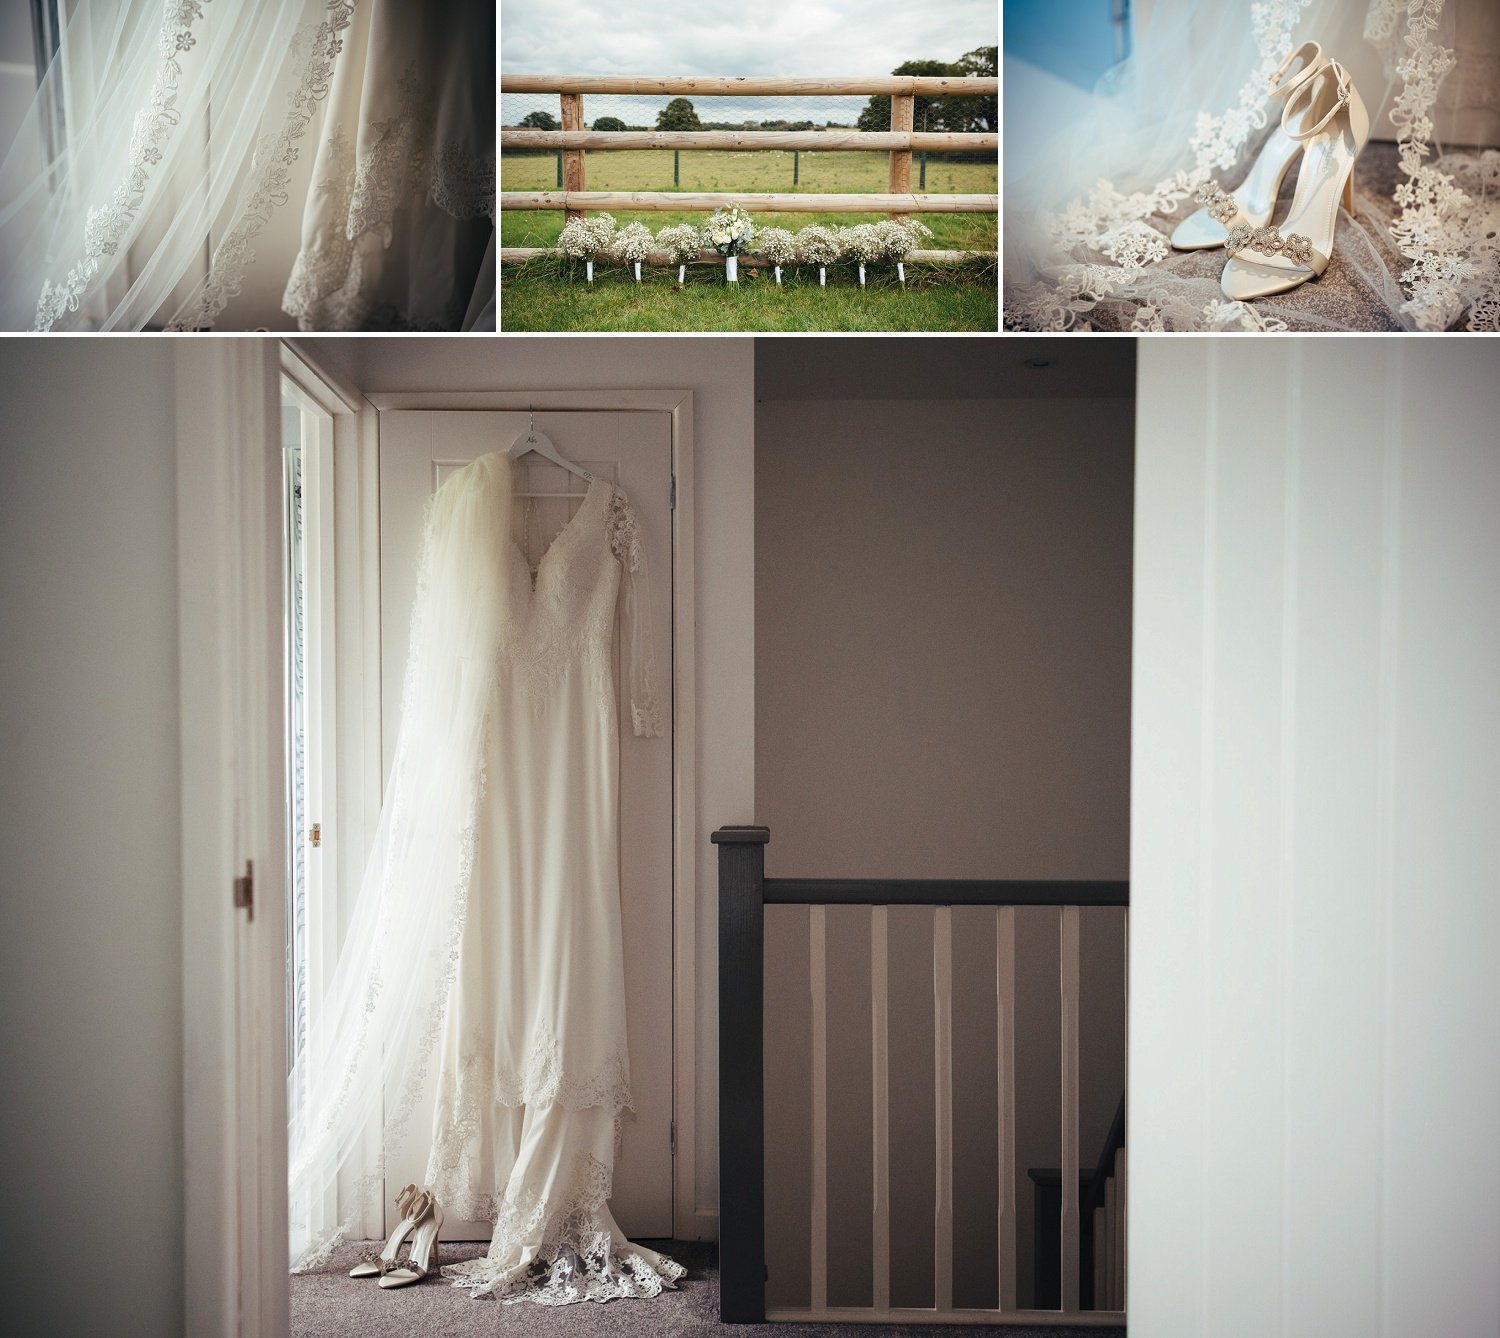 Wide and closeup photos of a wedding dress, veil, weddign shoes and bride and bridesmaids' bouquets